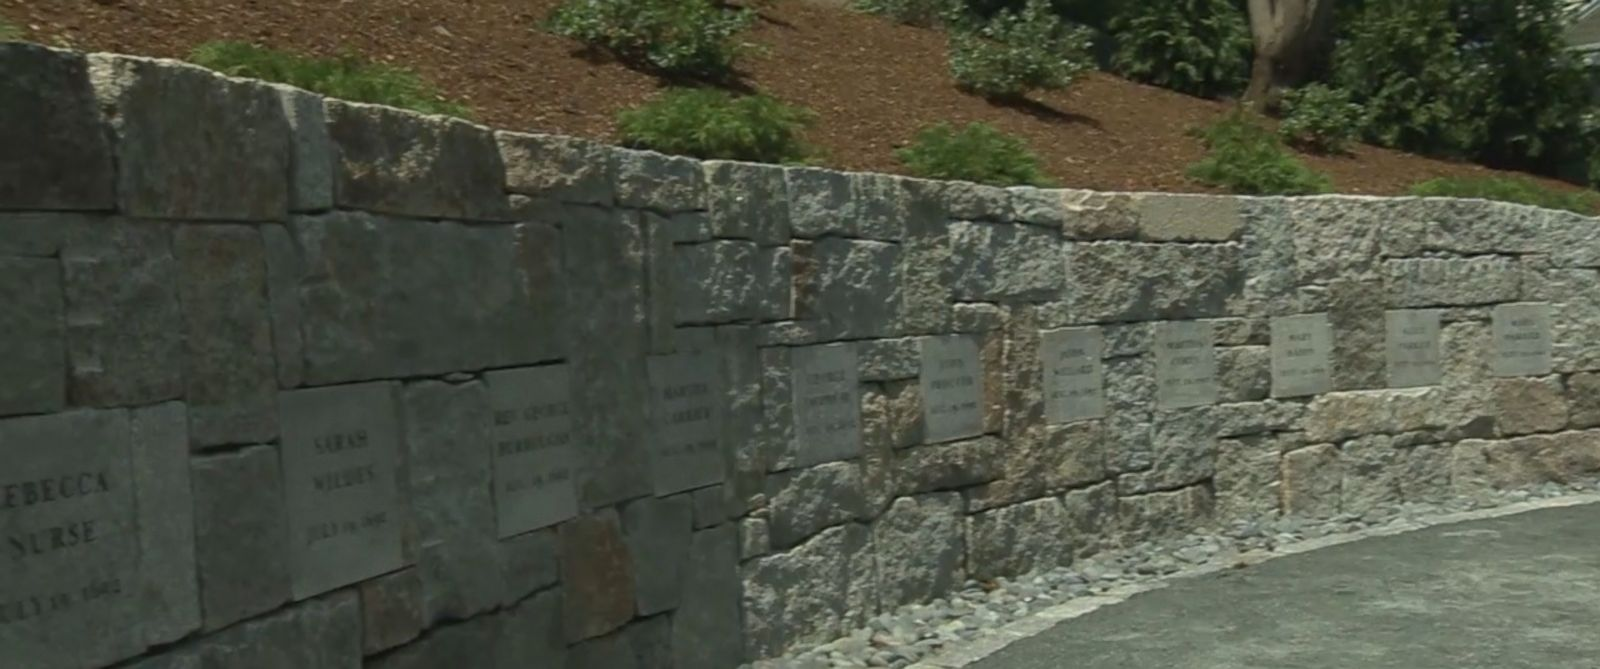 VIDEO: The Massachusetts city unveiled a memorial for the 20 people put to death in 1692.